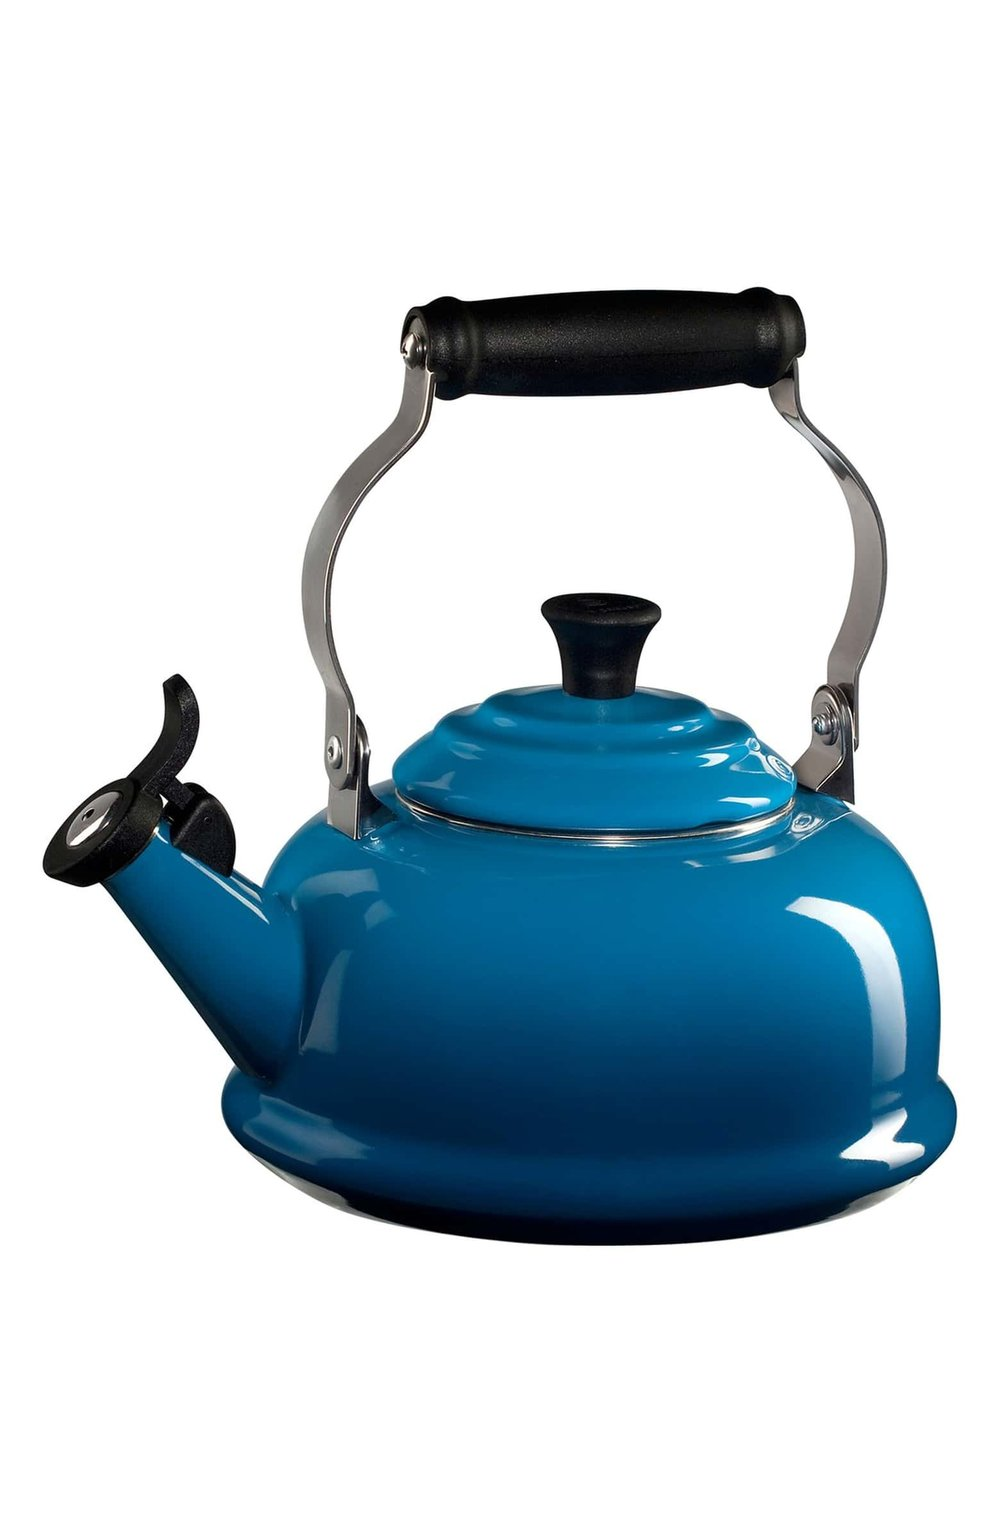 Le Creuset Classic Whistling Tea Kettle (SALE) - Who doesn't get super excited over anything Le Creuset?! This stunning tea kettle is on sale for $100 (20% off) and is available in this lovely marseille blue, caribbean teal, cherry, flame and white.